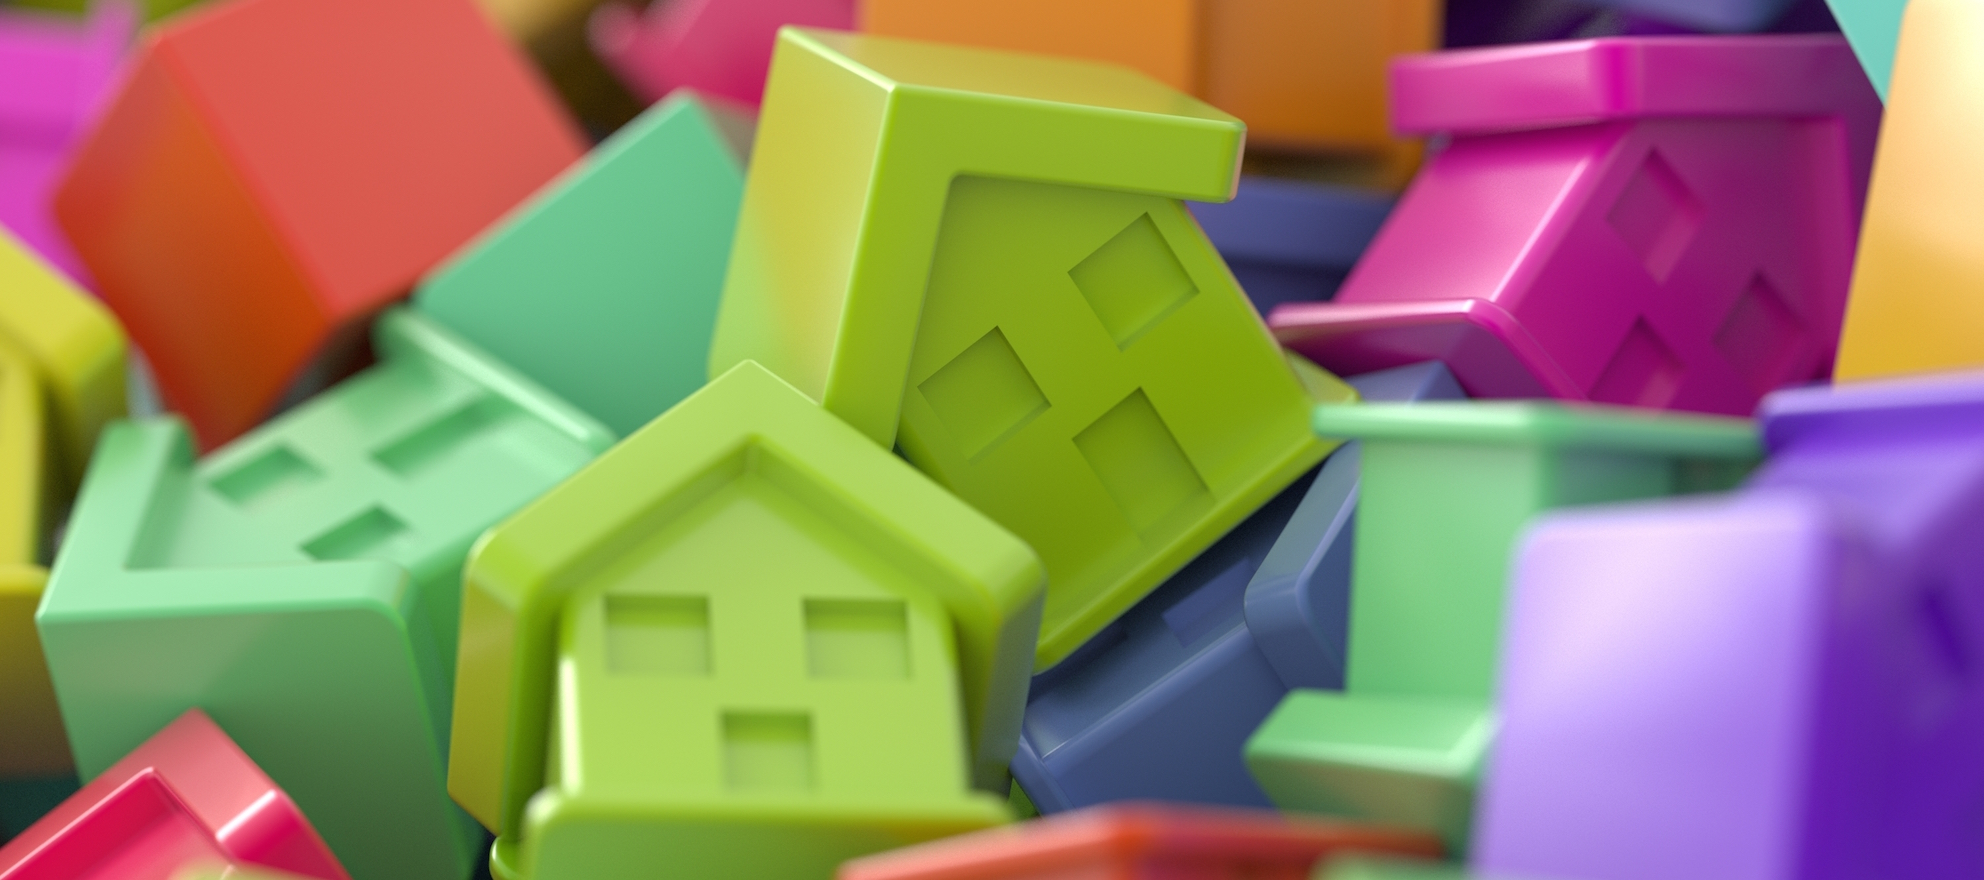 Housing should be booming, so what's going on?